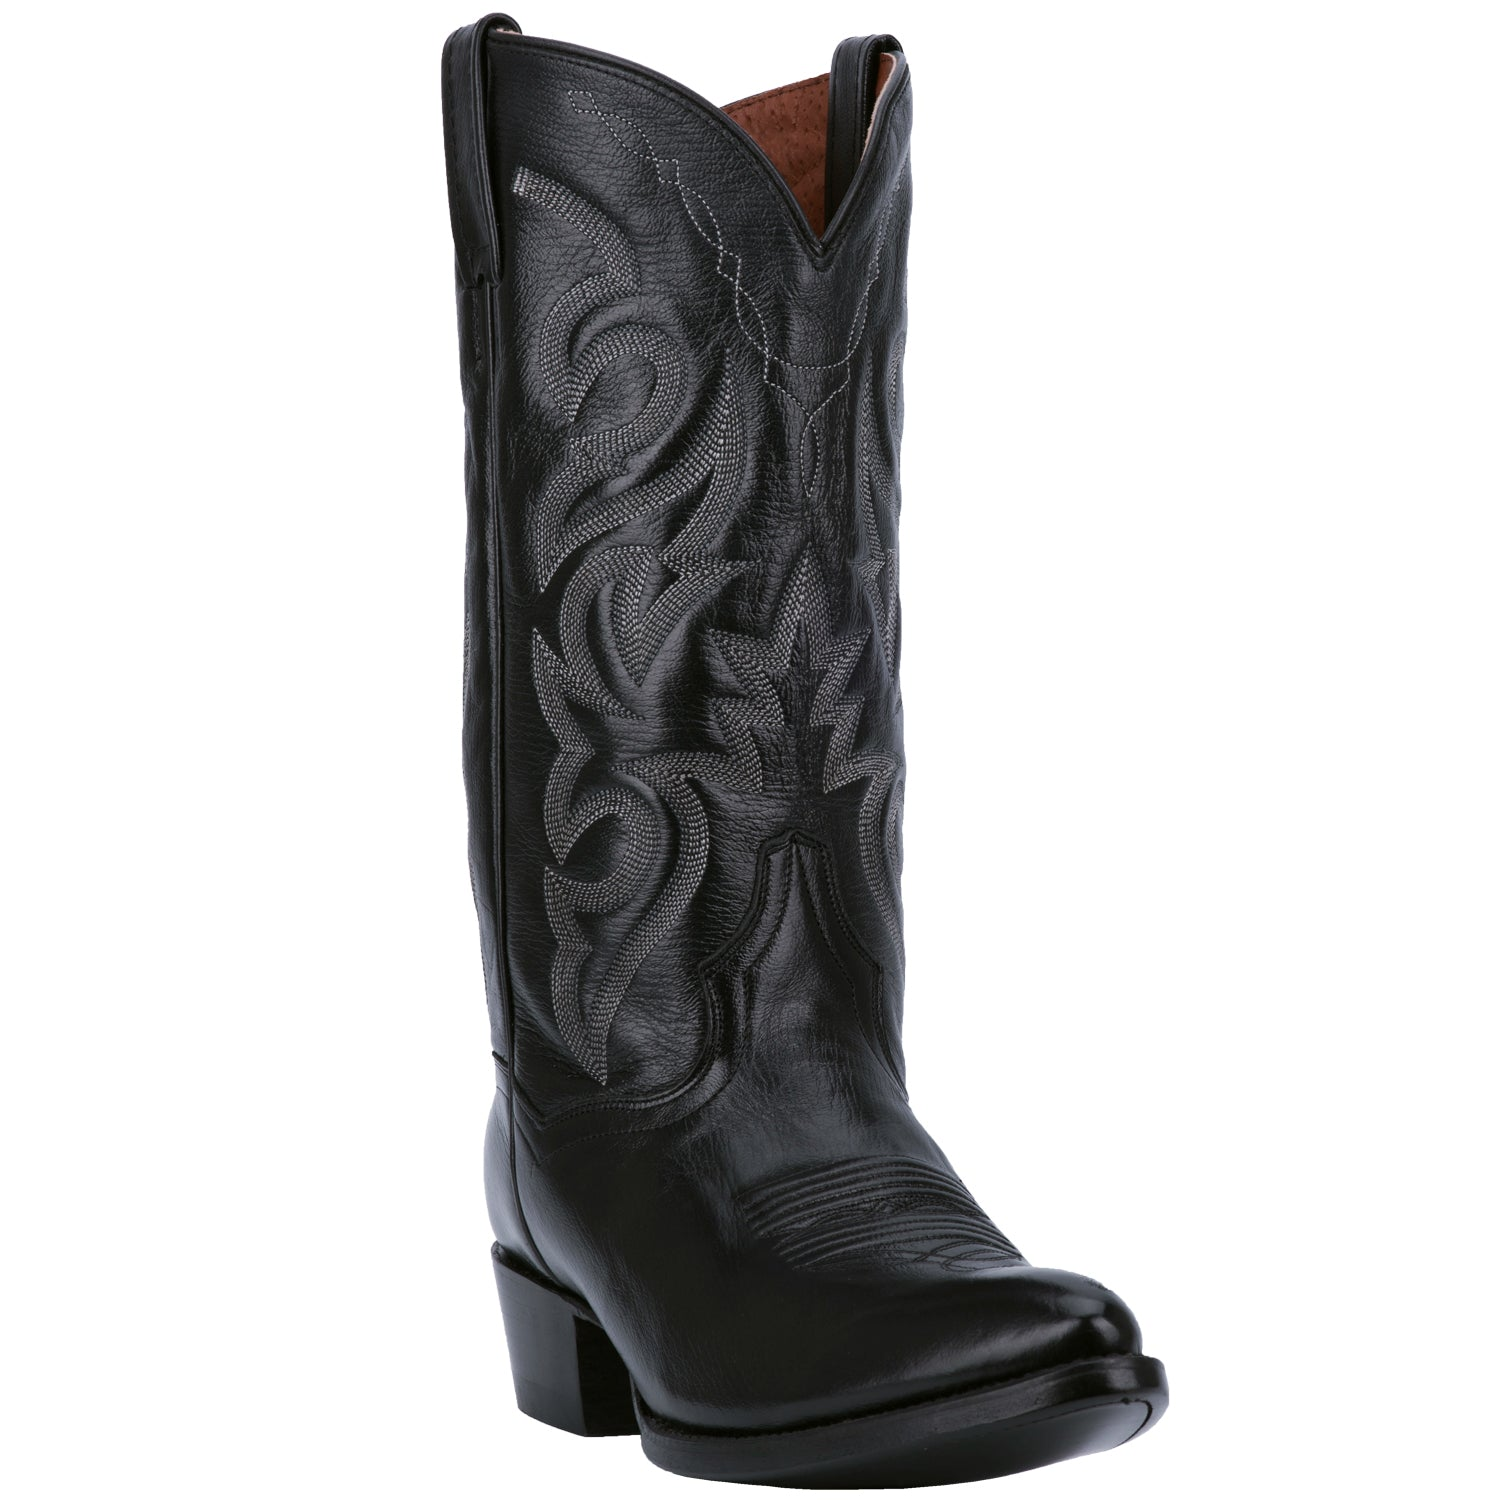 MILWAUKEE LEATHER BOOT 4253942448170